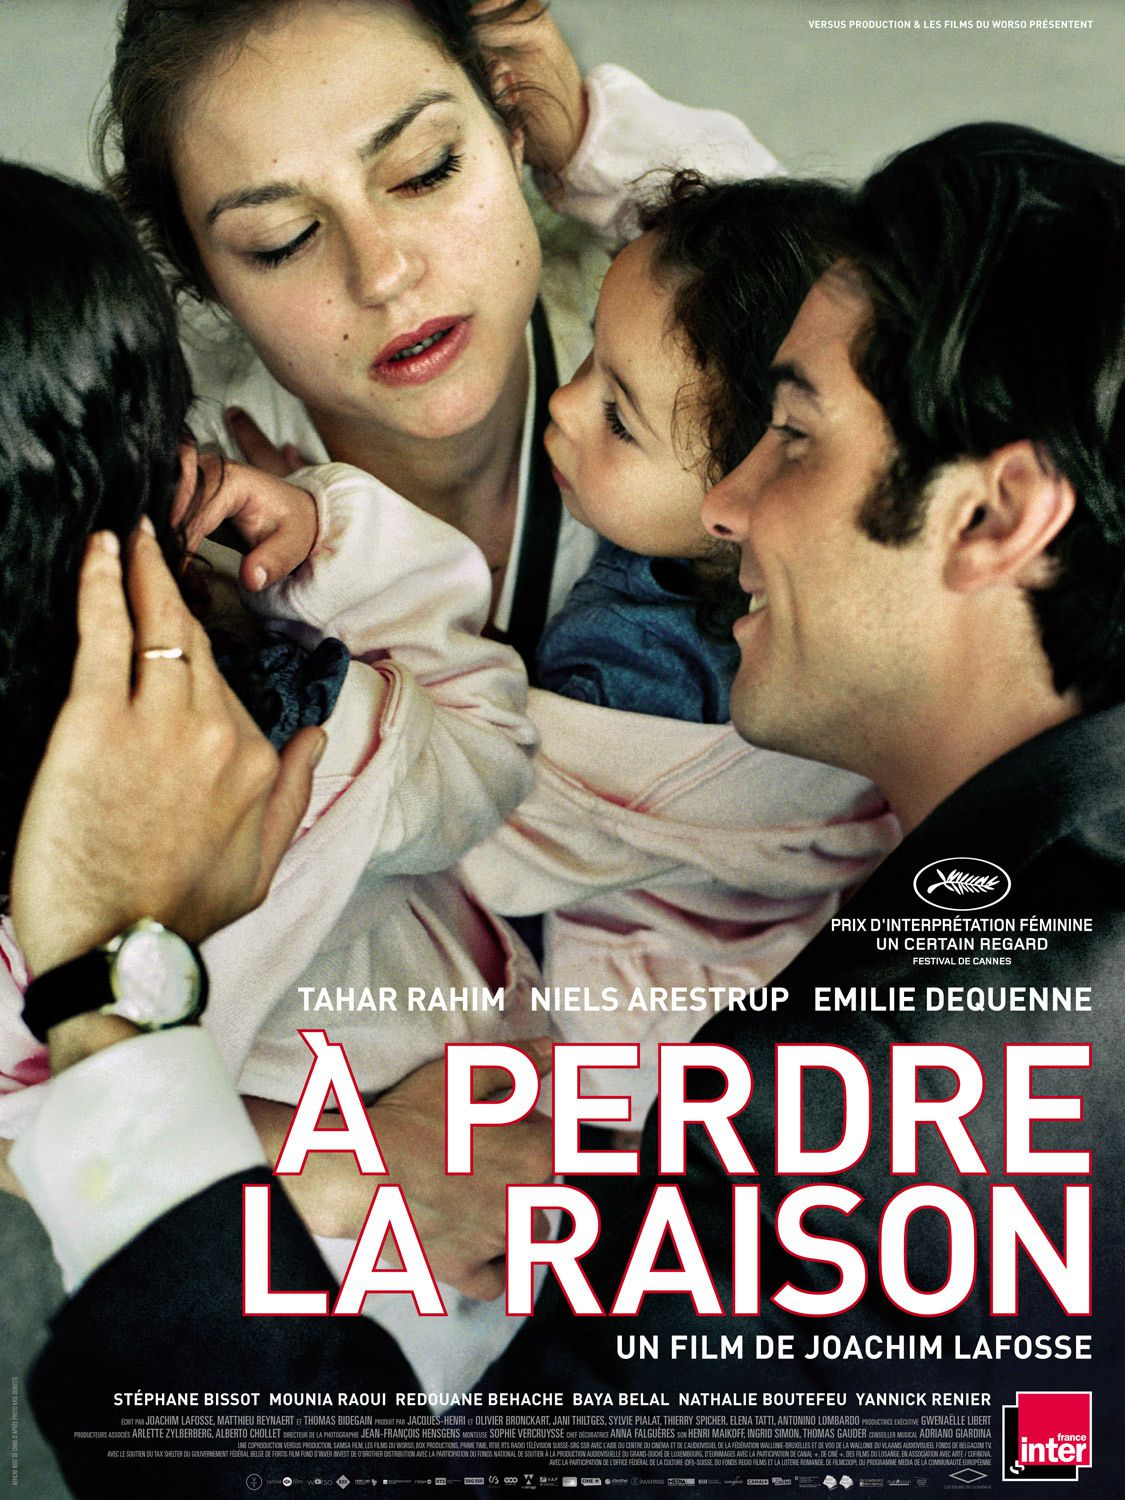 À perdre la raison - Film (2012) streaming VF gratuit complet